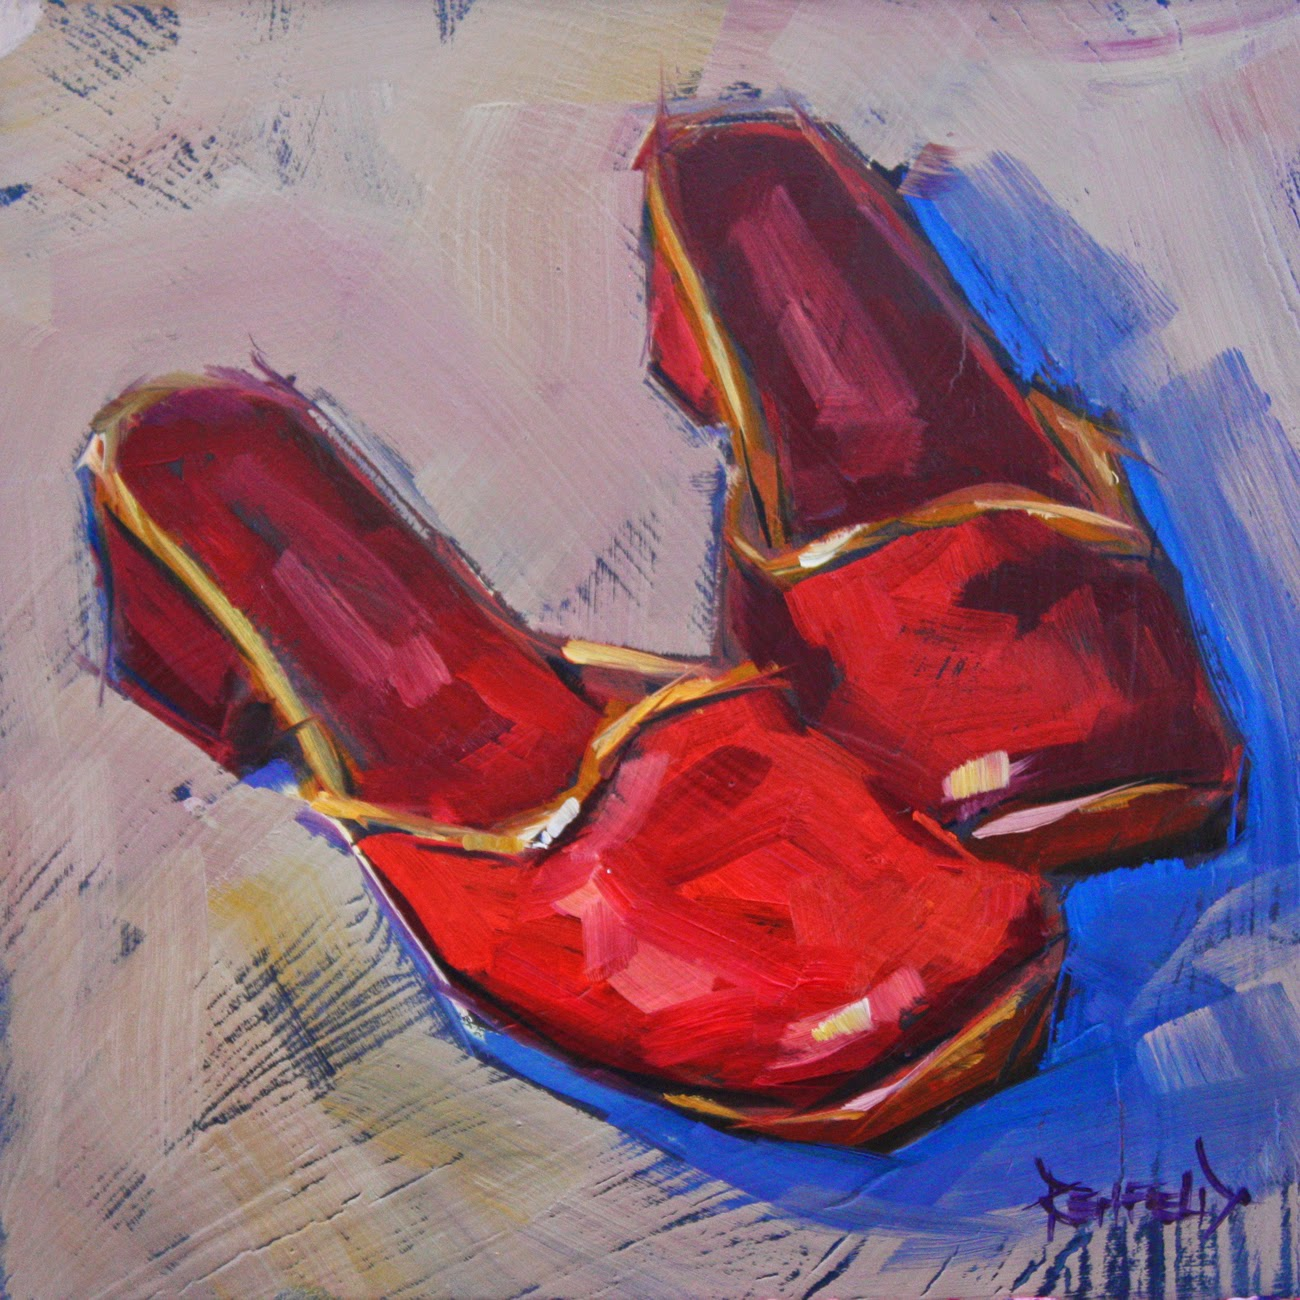 cathleen rehfeld • Daily Painting: Shoe Fiend! #2 Red Shoes